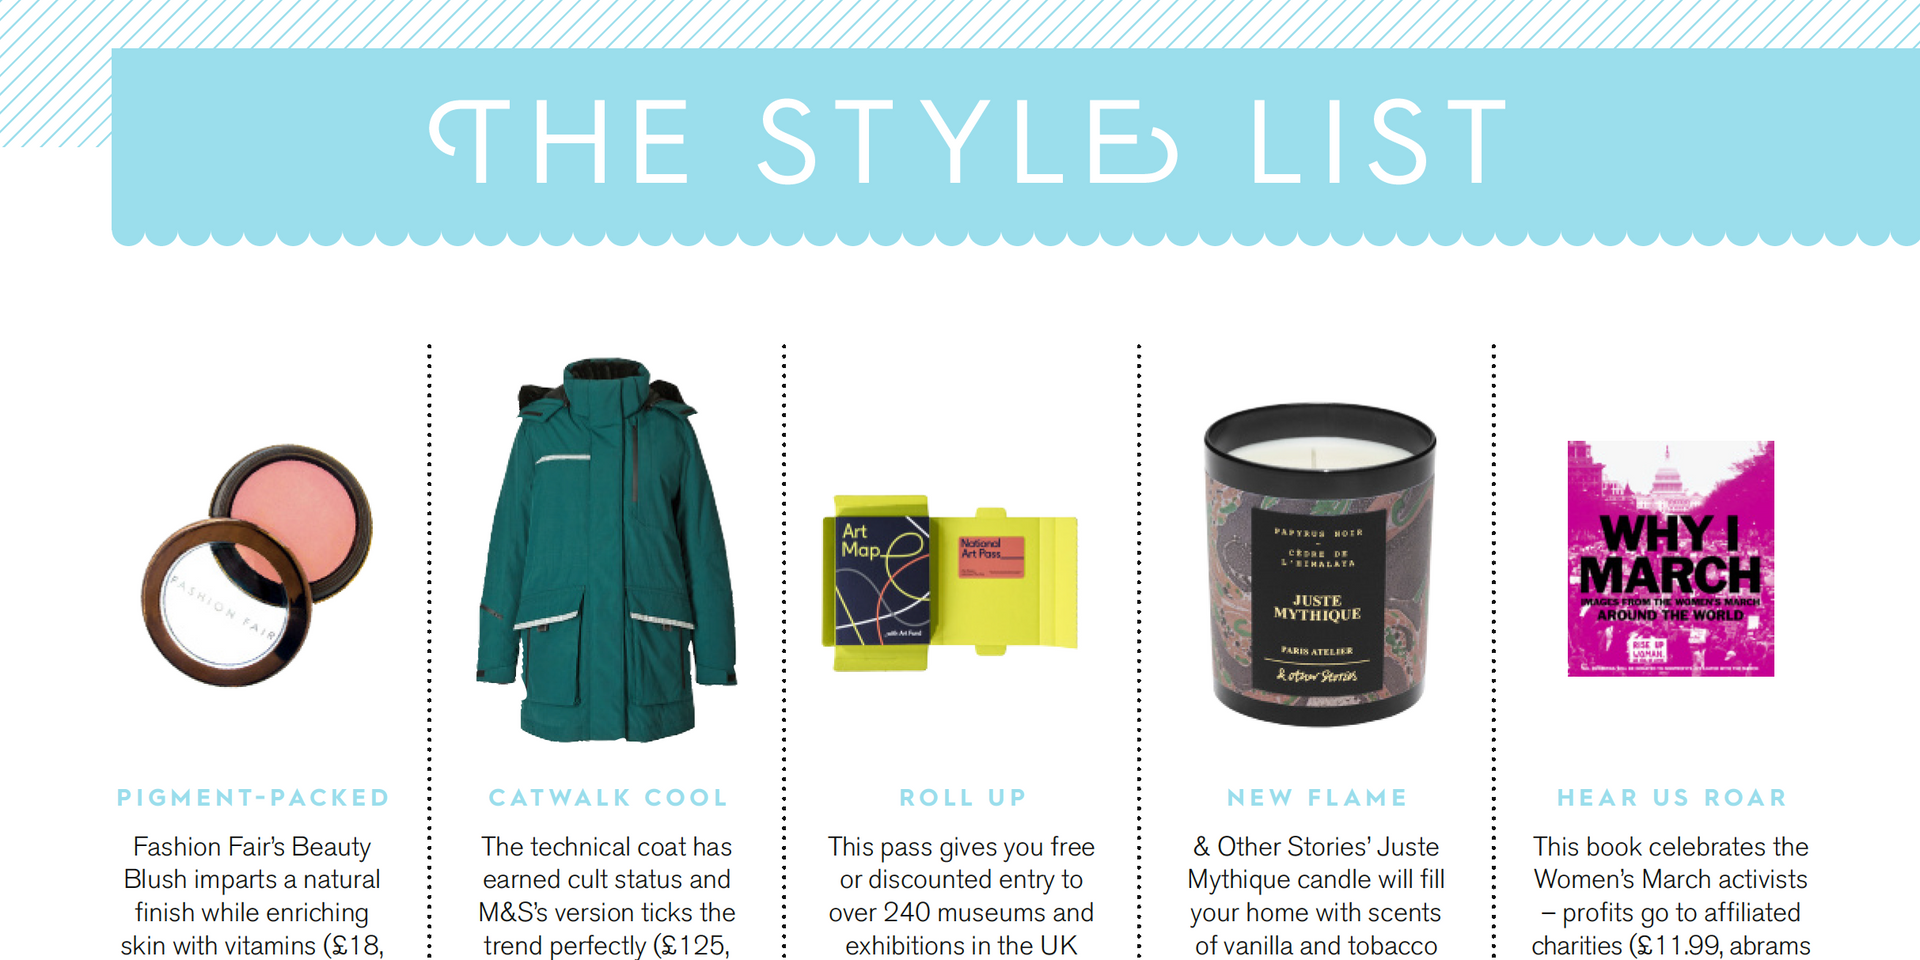 THE STYLE LIST, Stylist issue 396